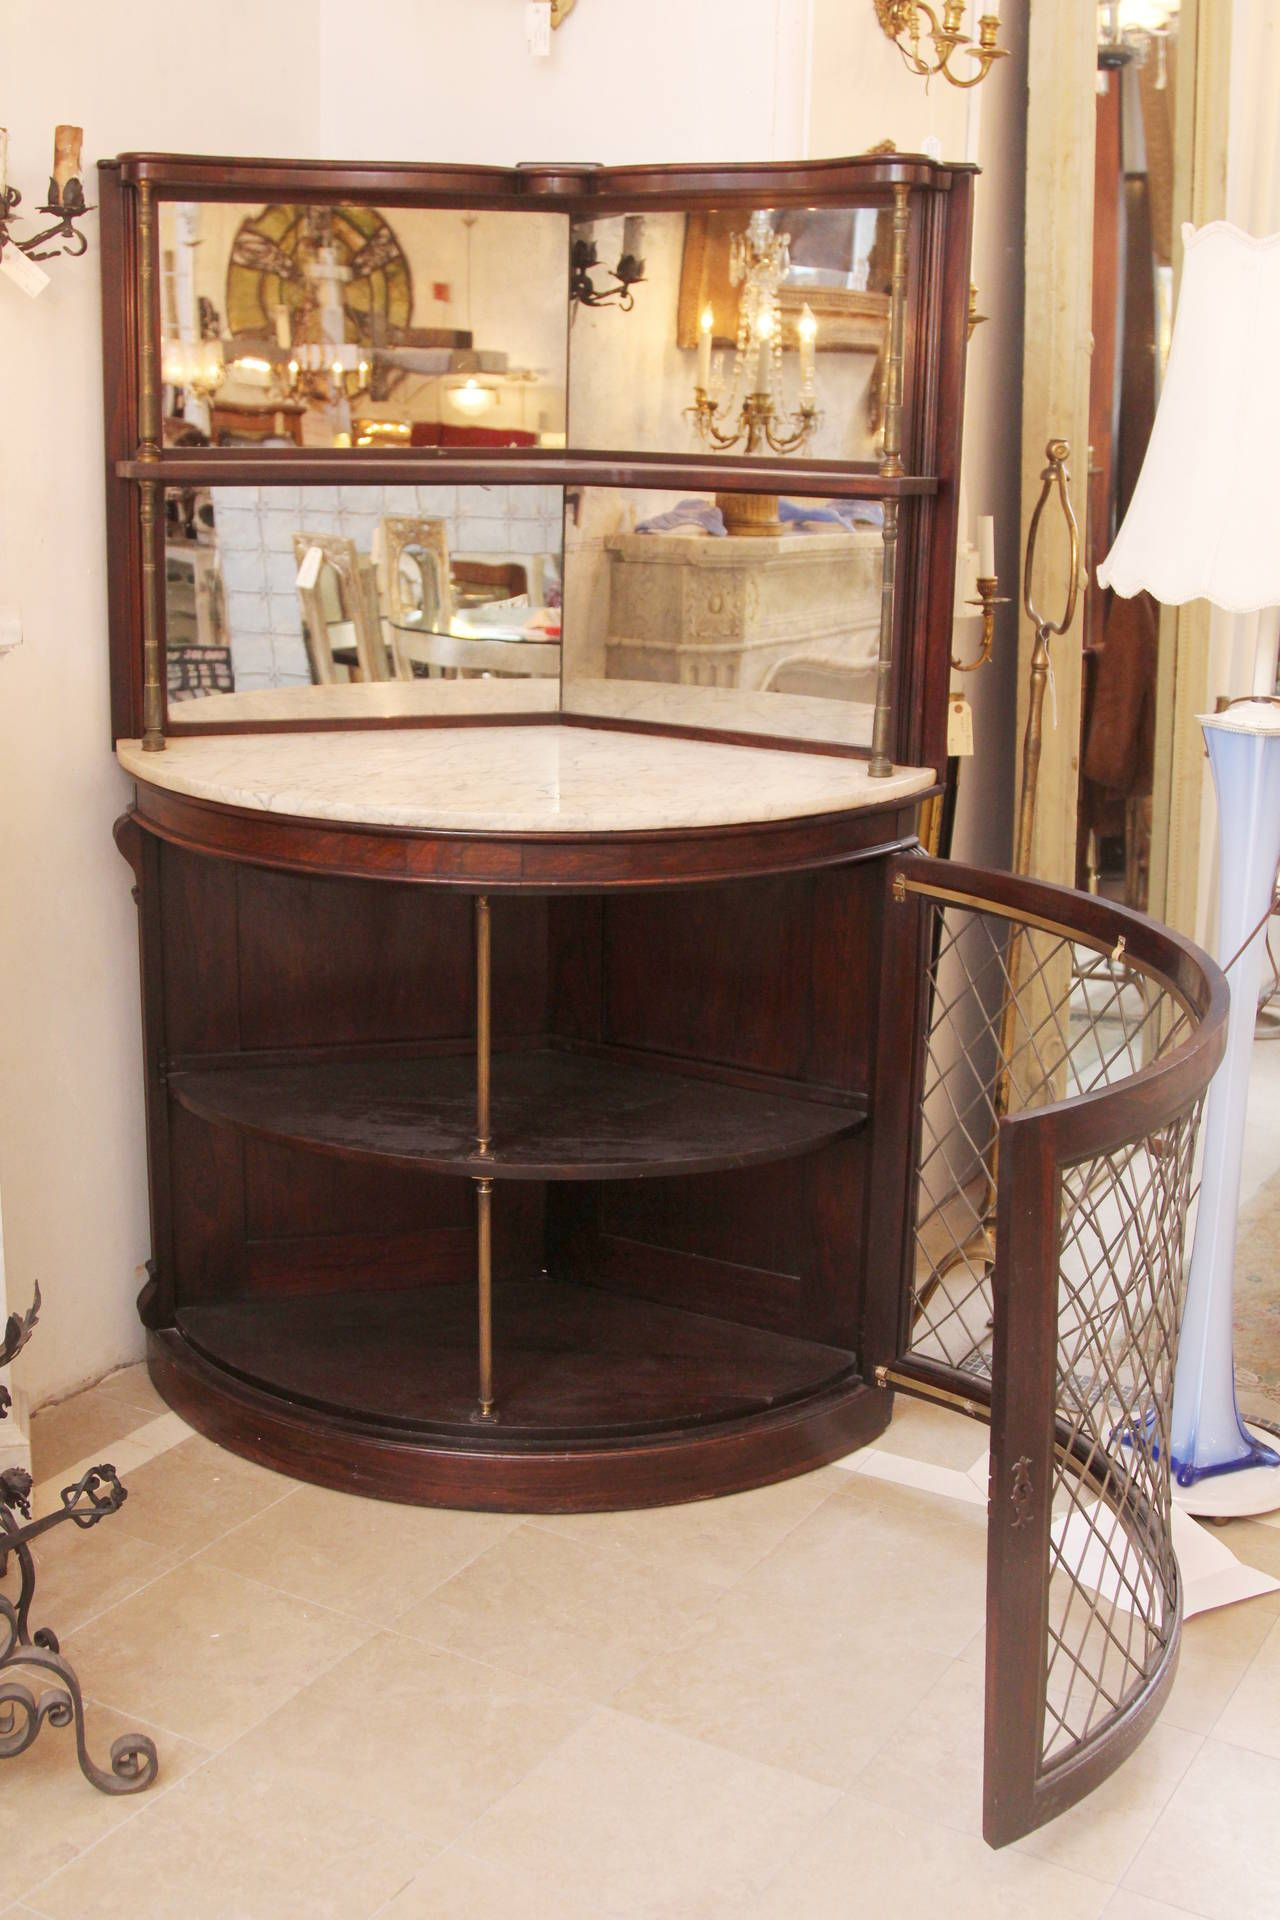 ideas diy your than sets hutch sale premade of perfect elegant archives home coffee stunning bars for bar compact awesome luxury contemporary